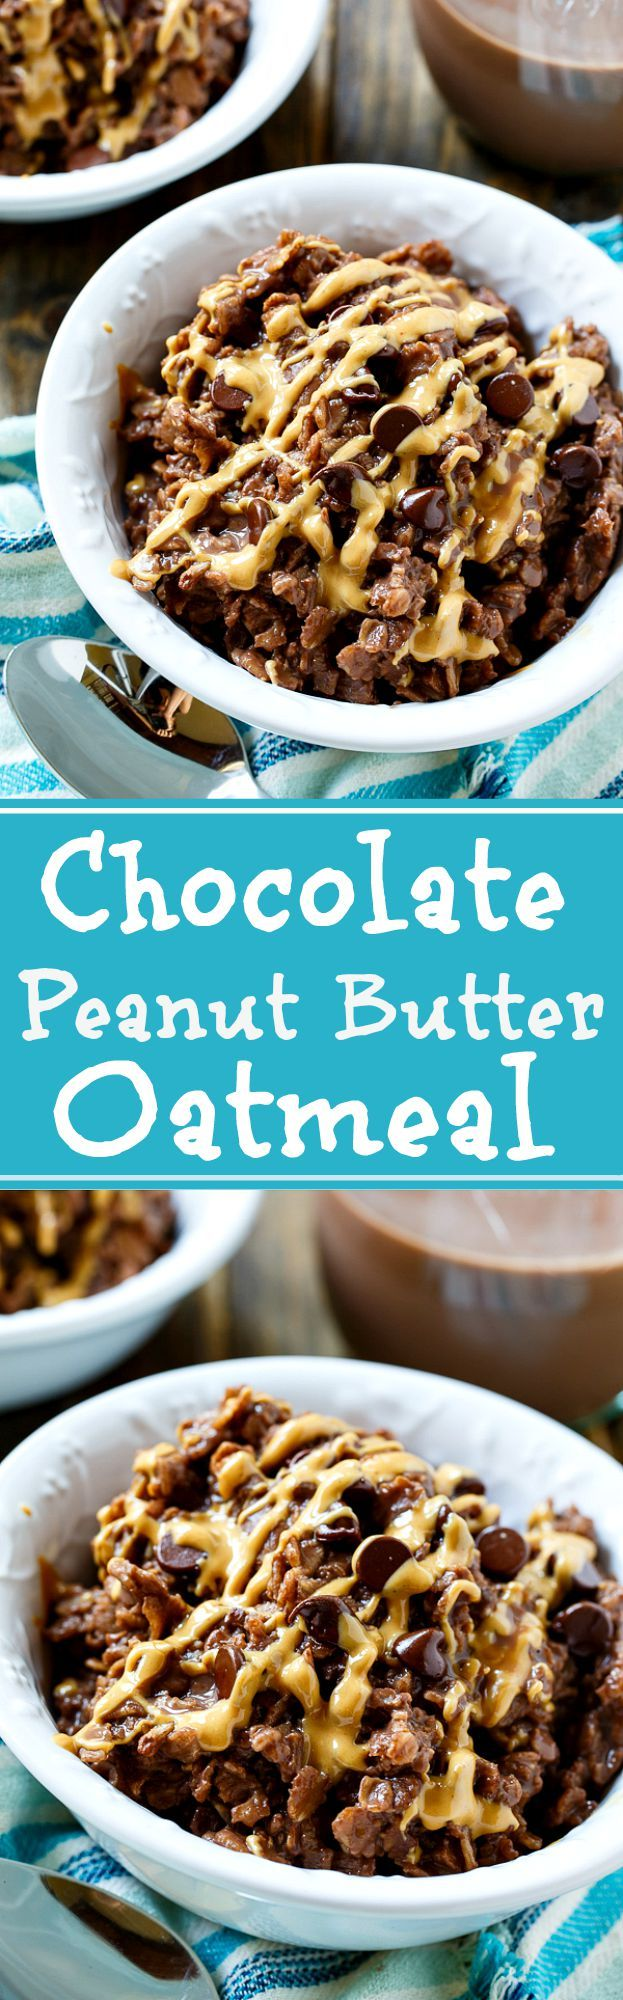 Chocolate-Peanut Butter Oatmeal- only 4 ingredients and 5 minutes needed to make this oatmeal. The chocolate comes form cooking the oatmeal in Silk Chocolate Cashewmilk #ad